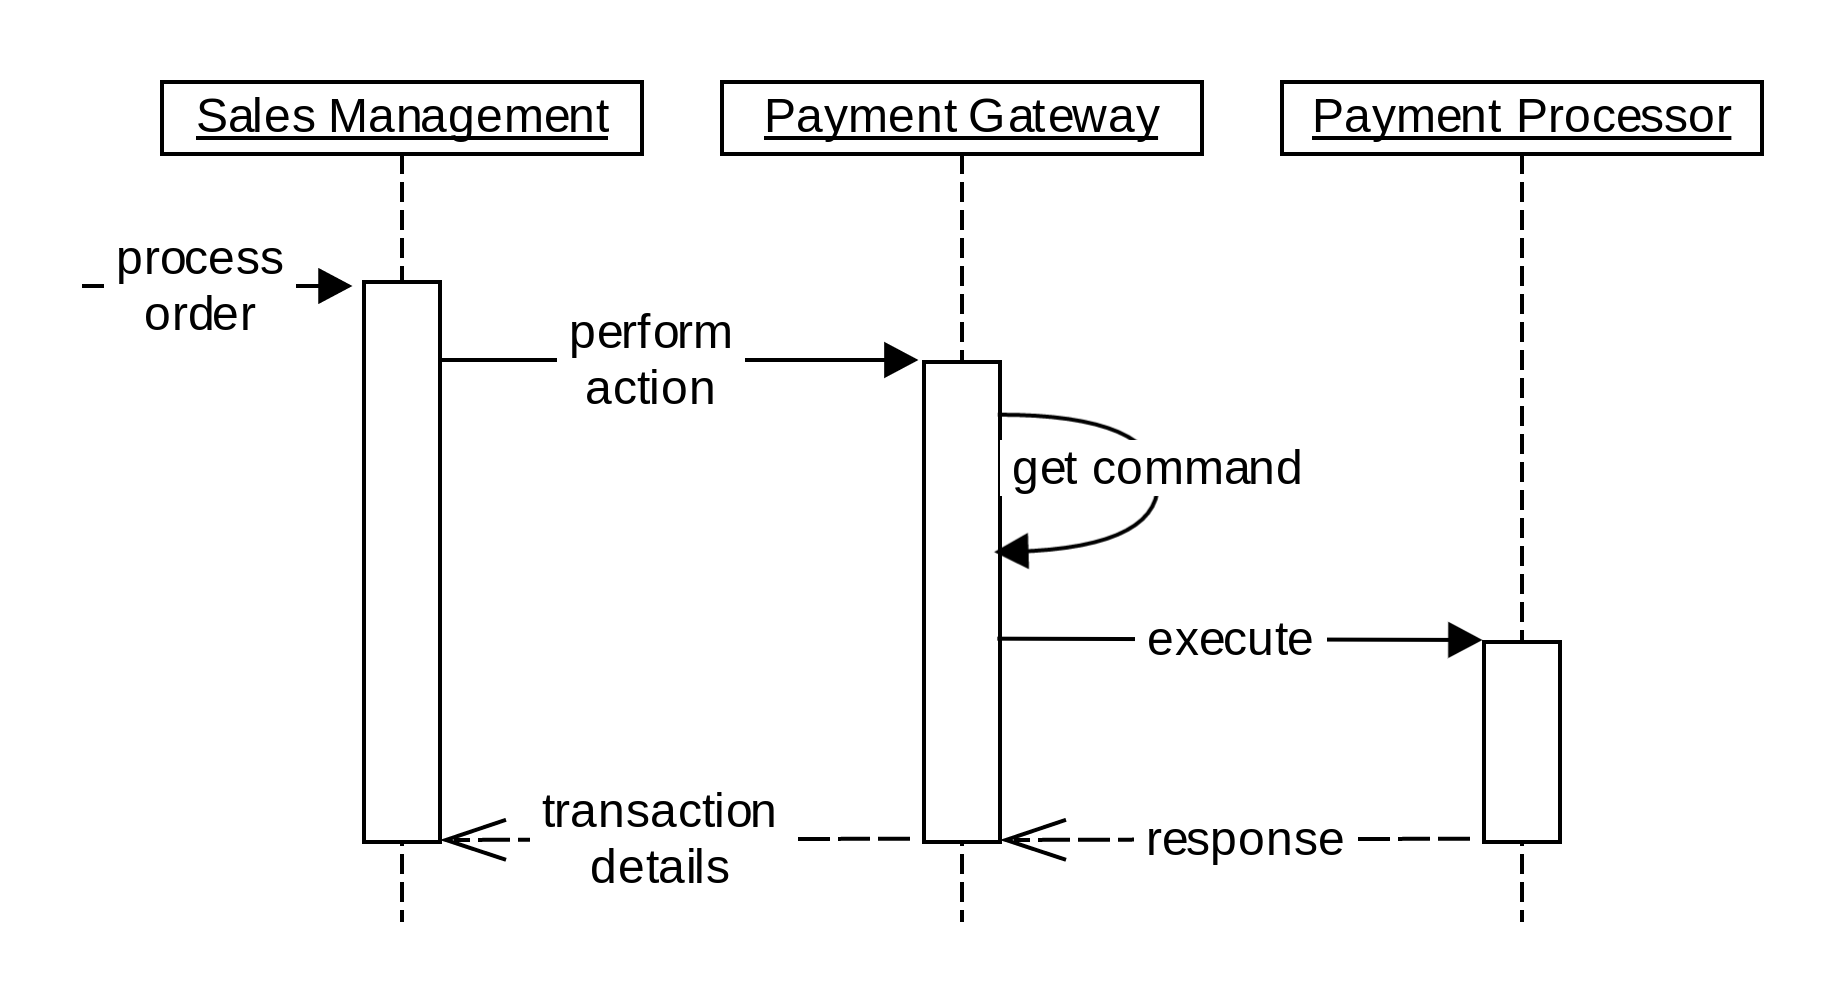 sequence diagram questions and answers stage directions person magento2 how does the payment gateway works in magento 2